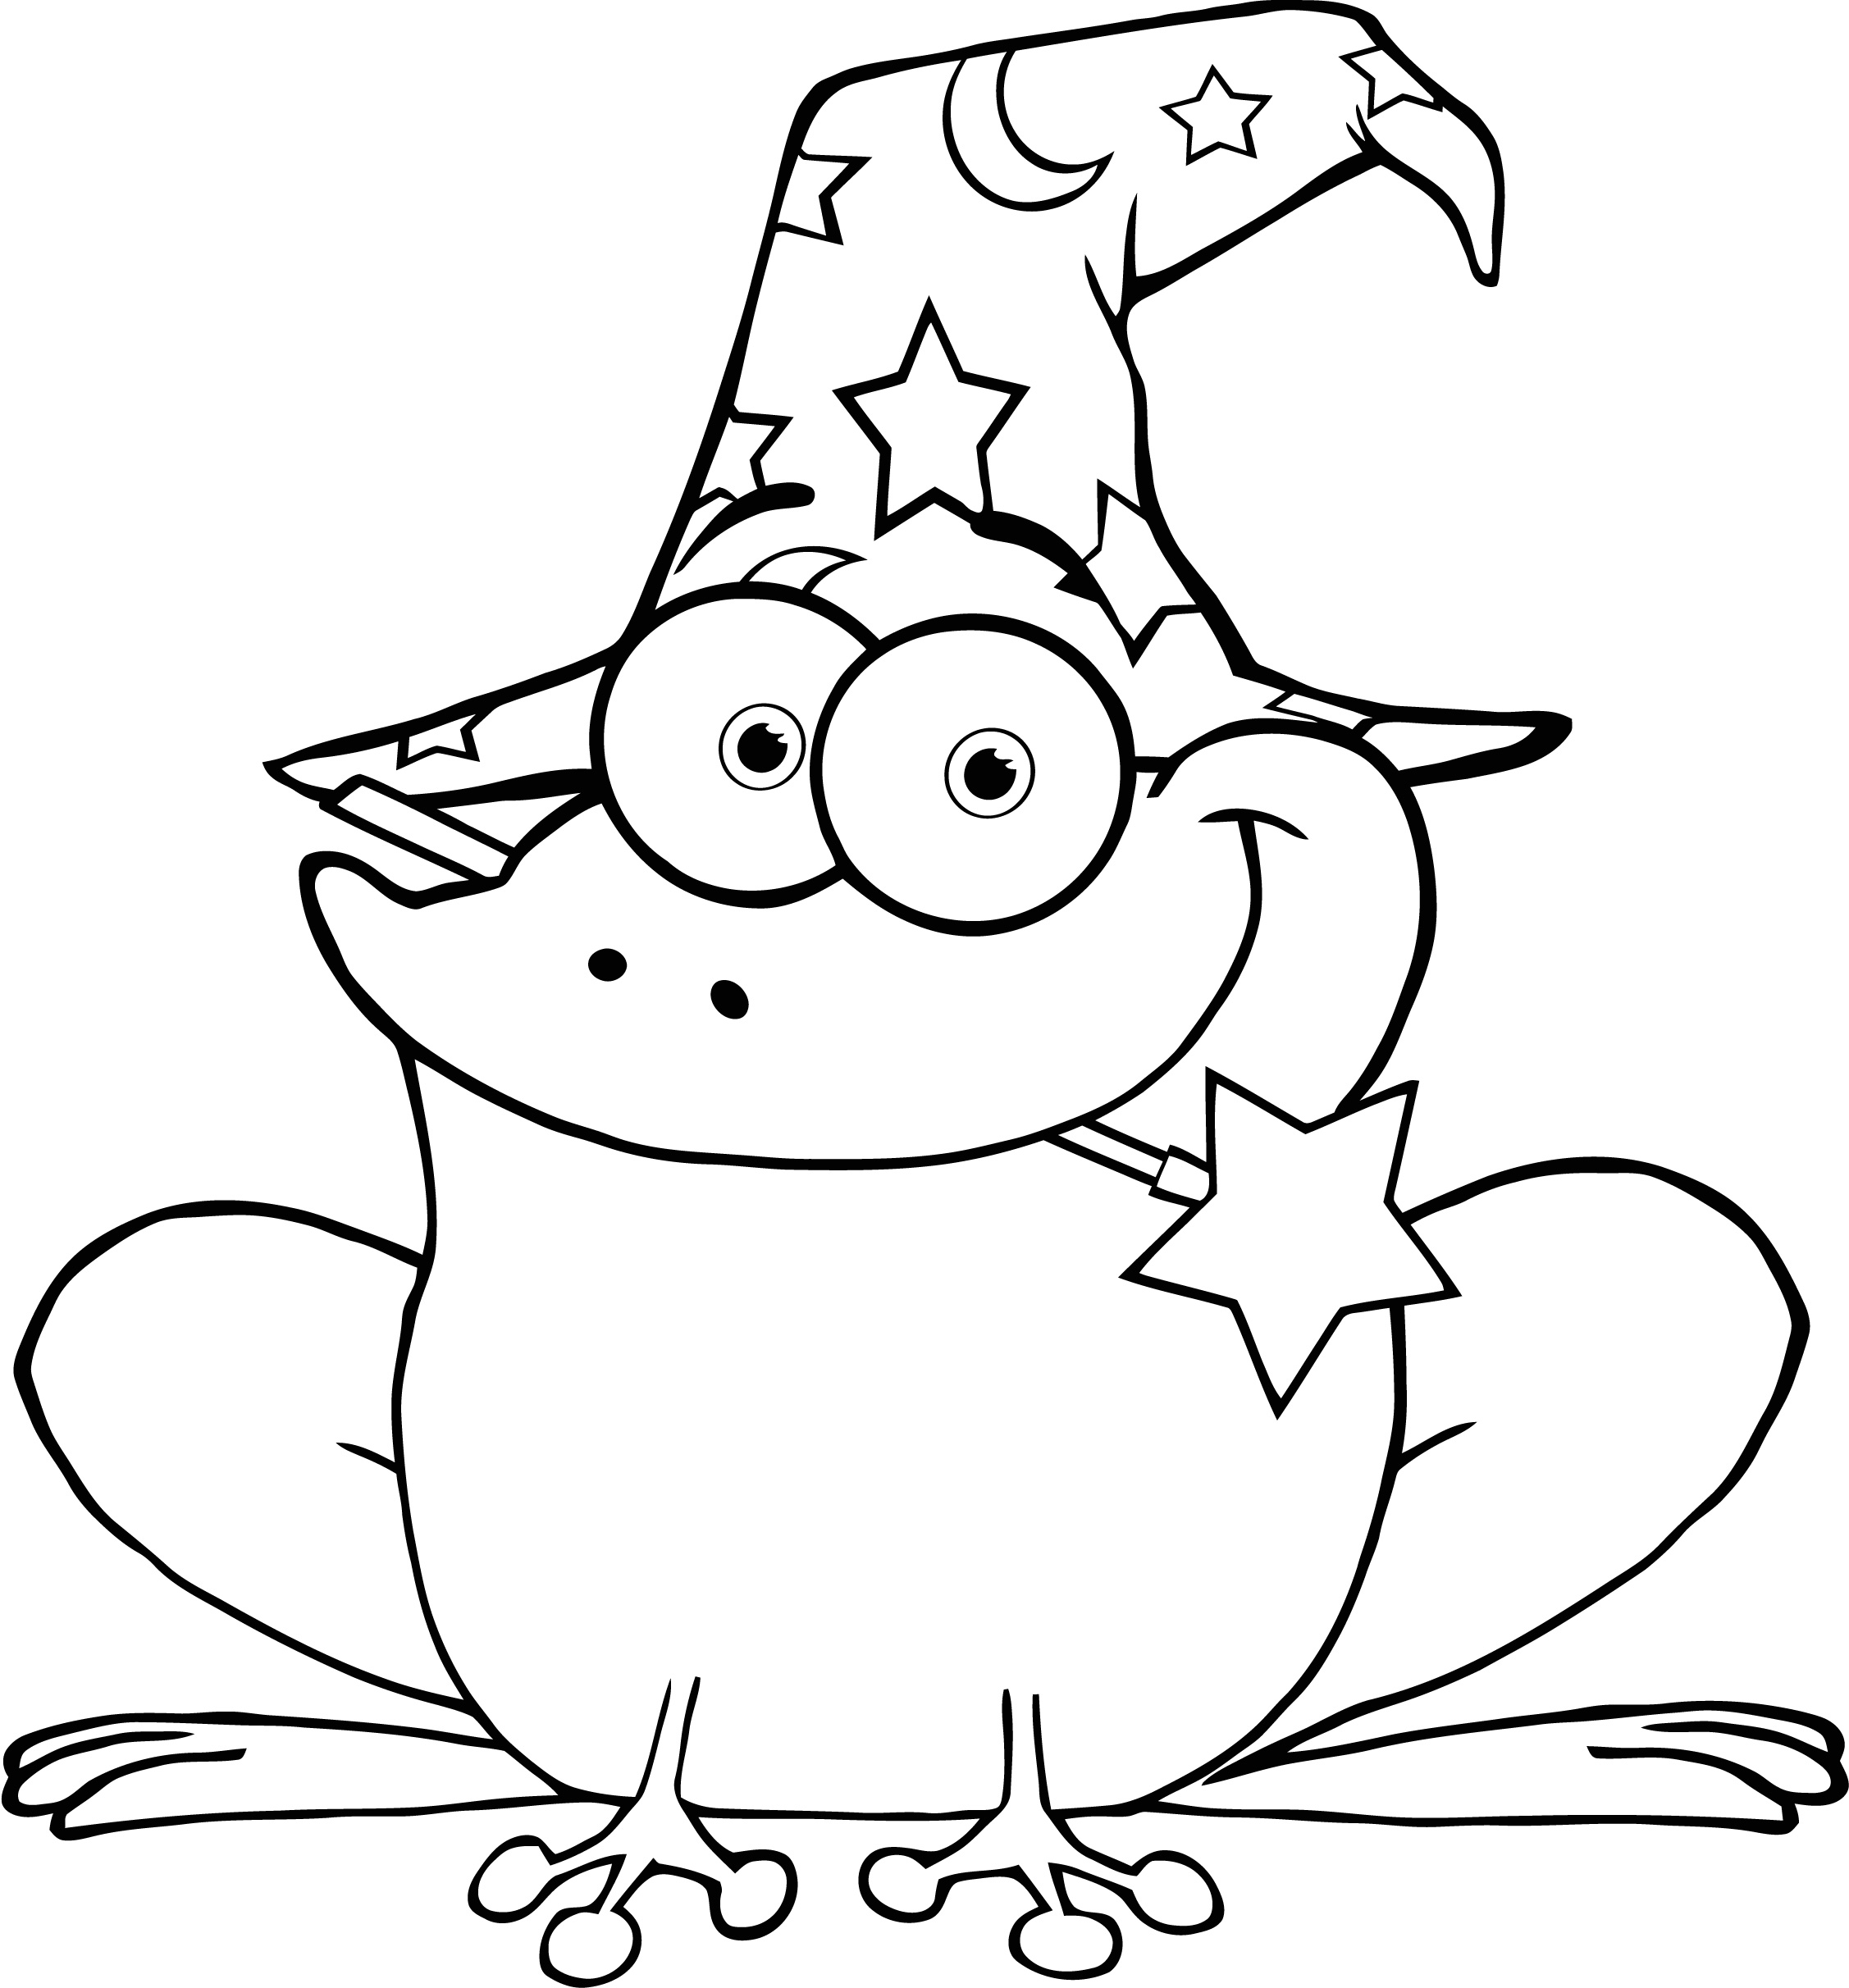 2254x2424 Colour Page Of Wizard Frog With A Magic Wand